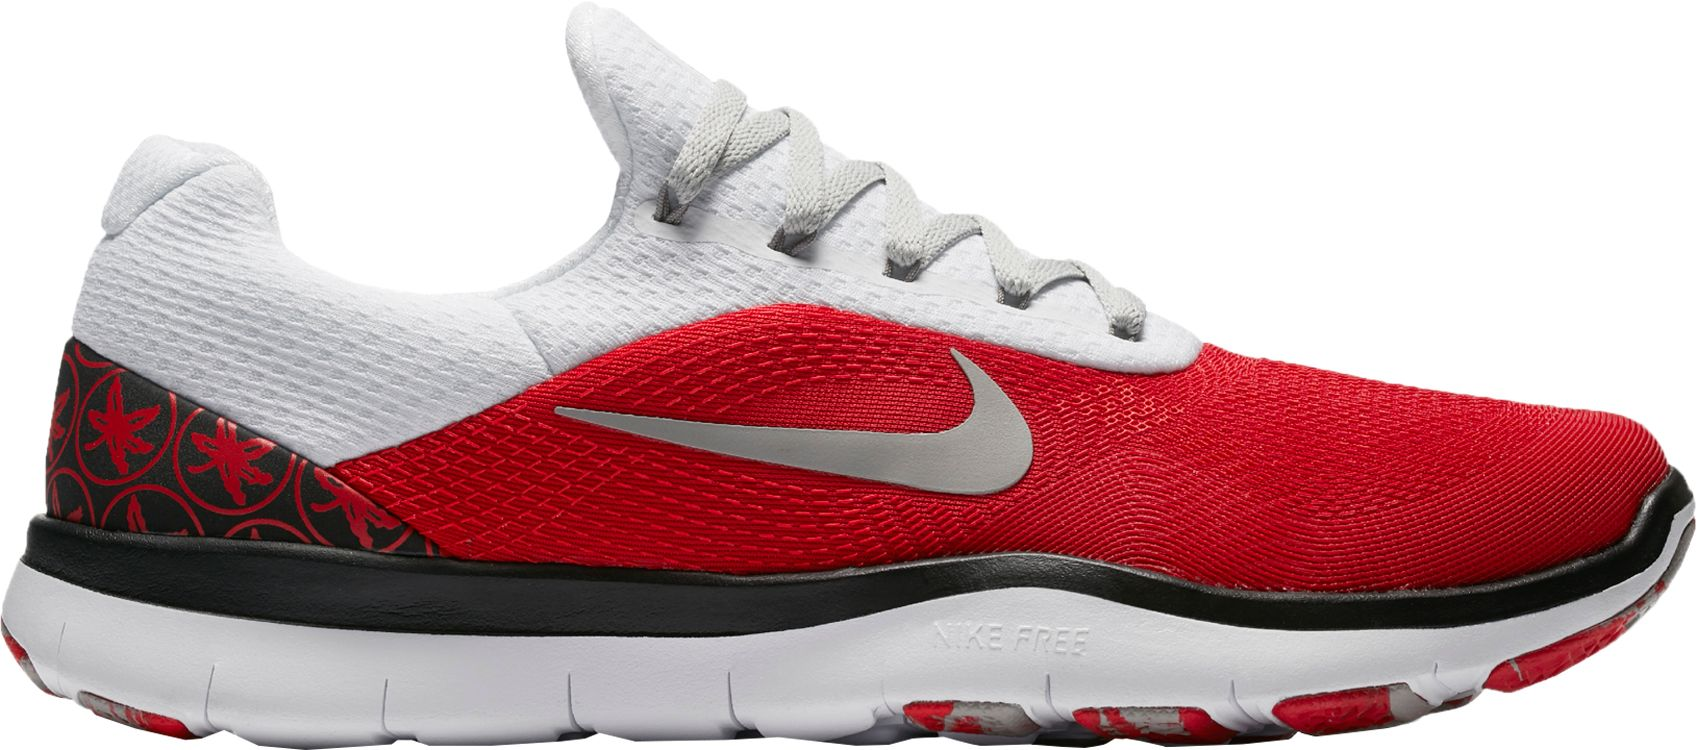 Nike Men\u0027s Free Trainer V7 Week Zero Ohio State Edition Training Shoes